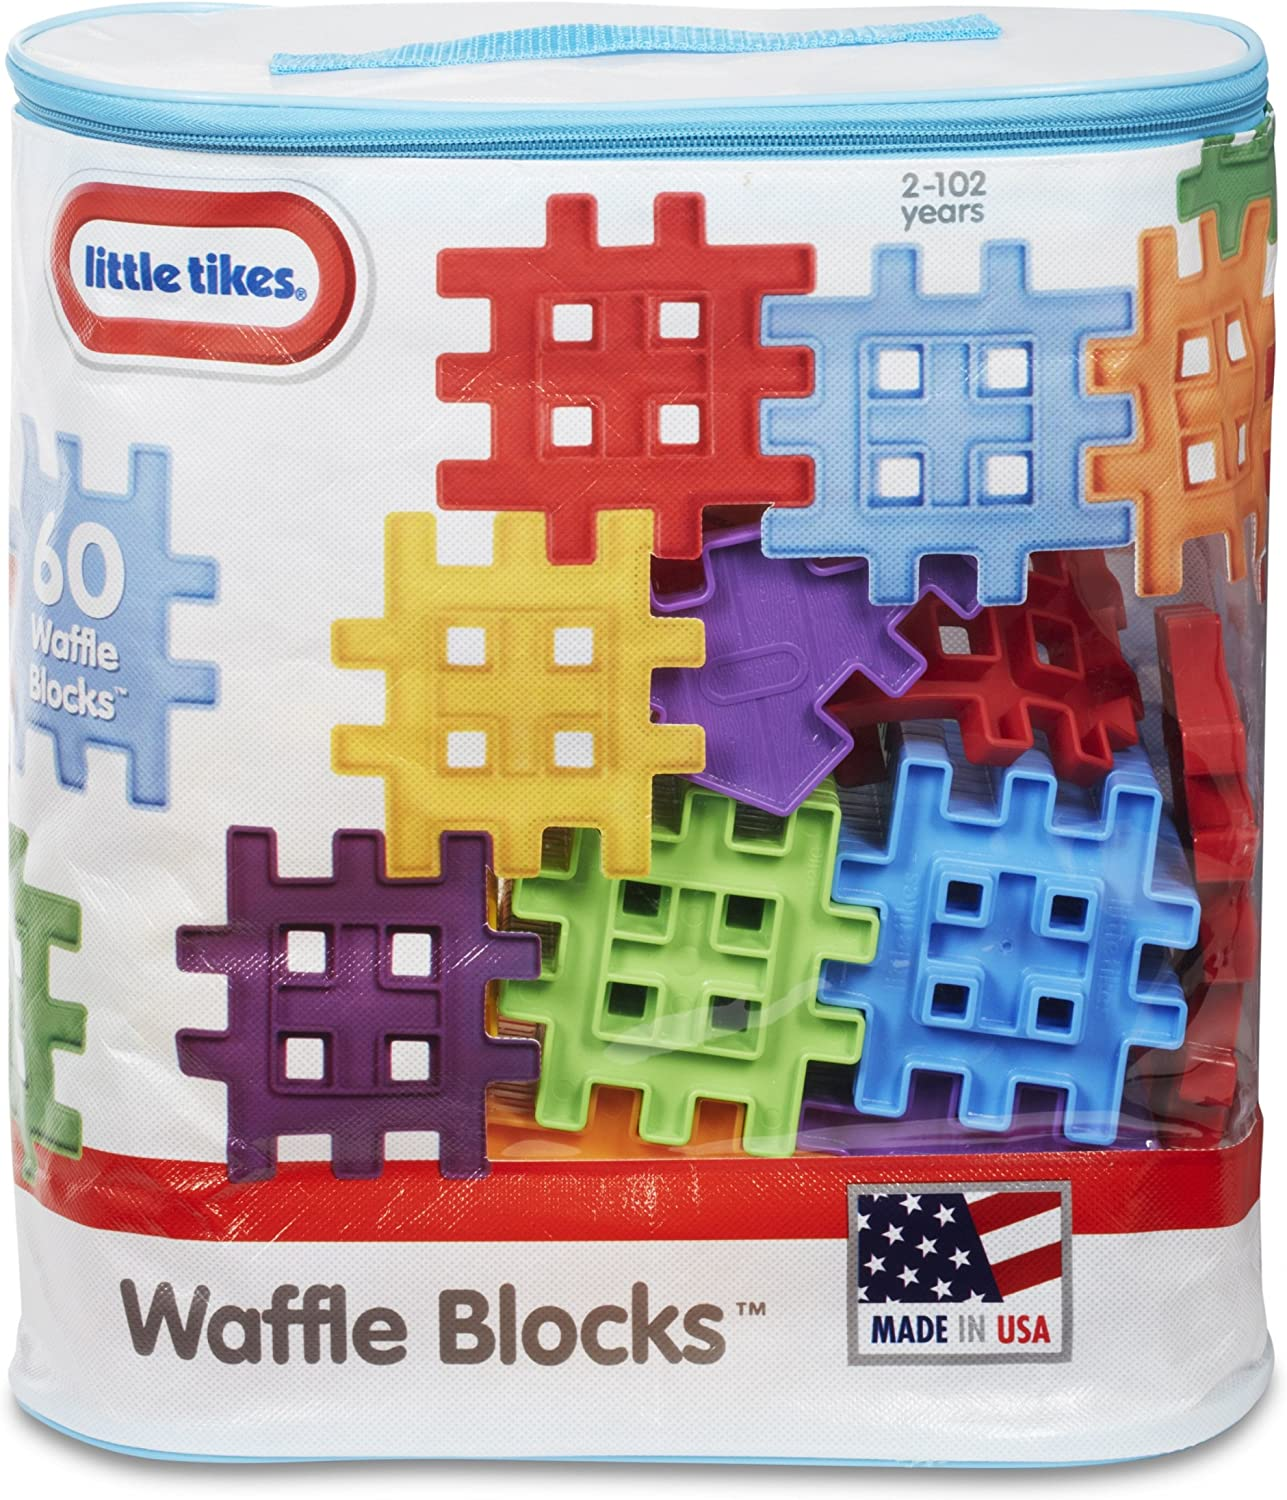 Outlet ☆ Free Shipping Little Tikes Waffle Blocks Bag 60 Piece Safety and trust